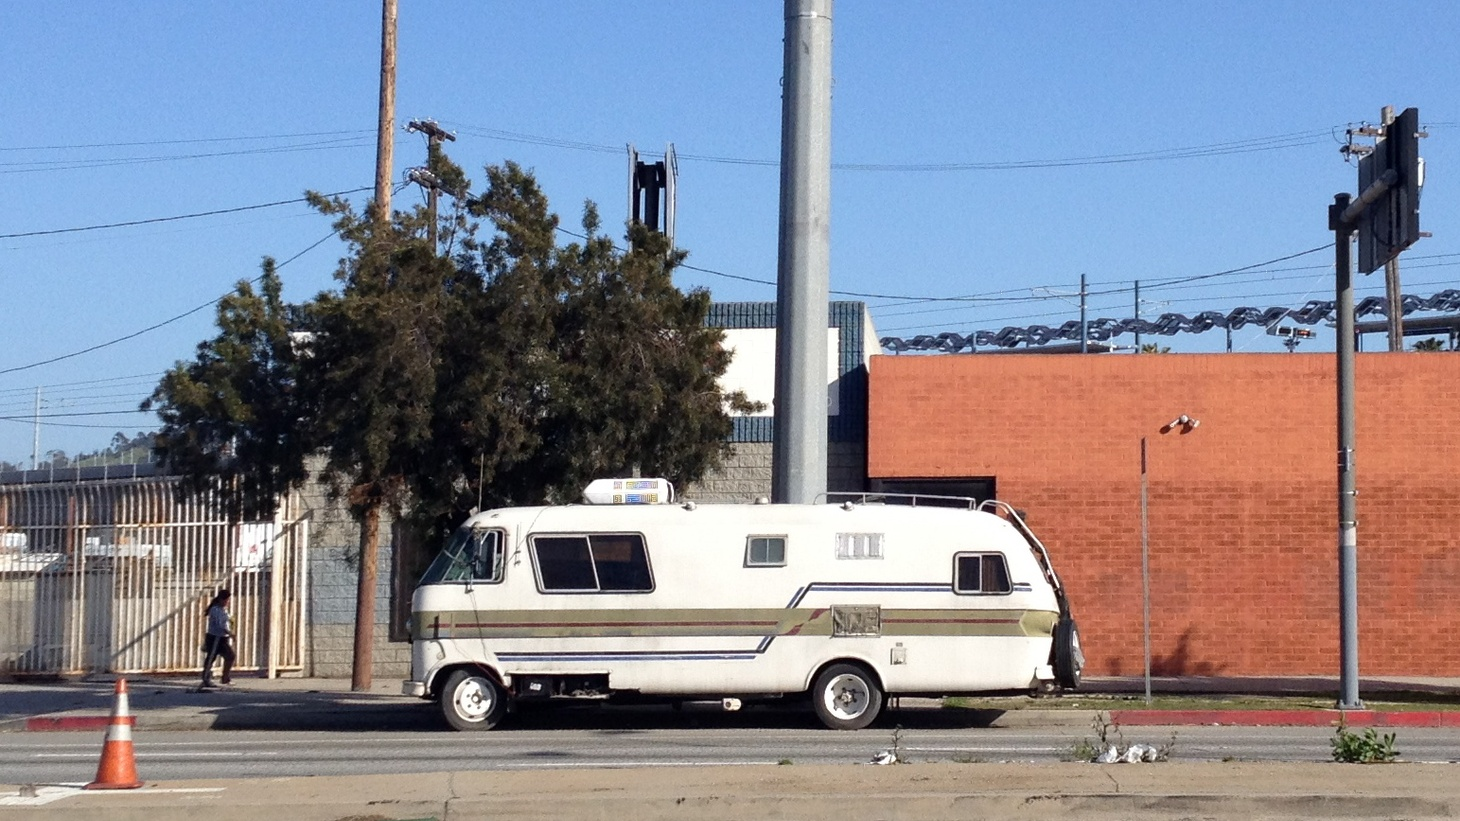 A mobile home in Los Angeles.